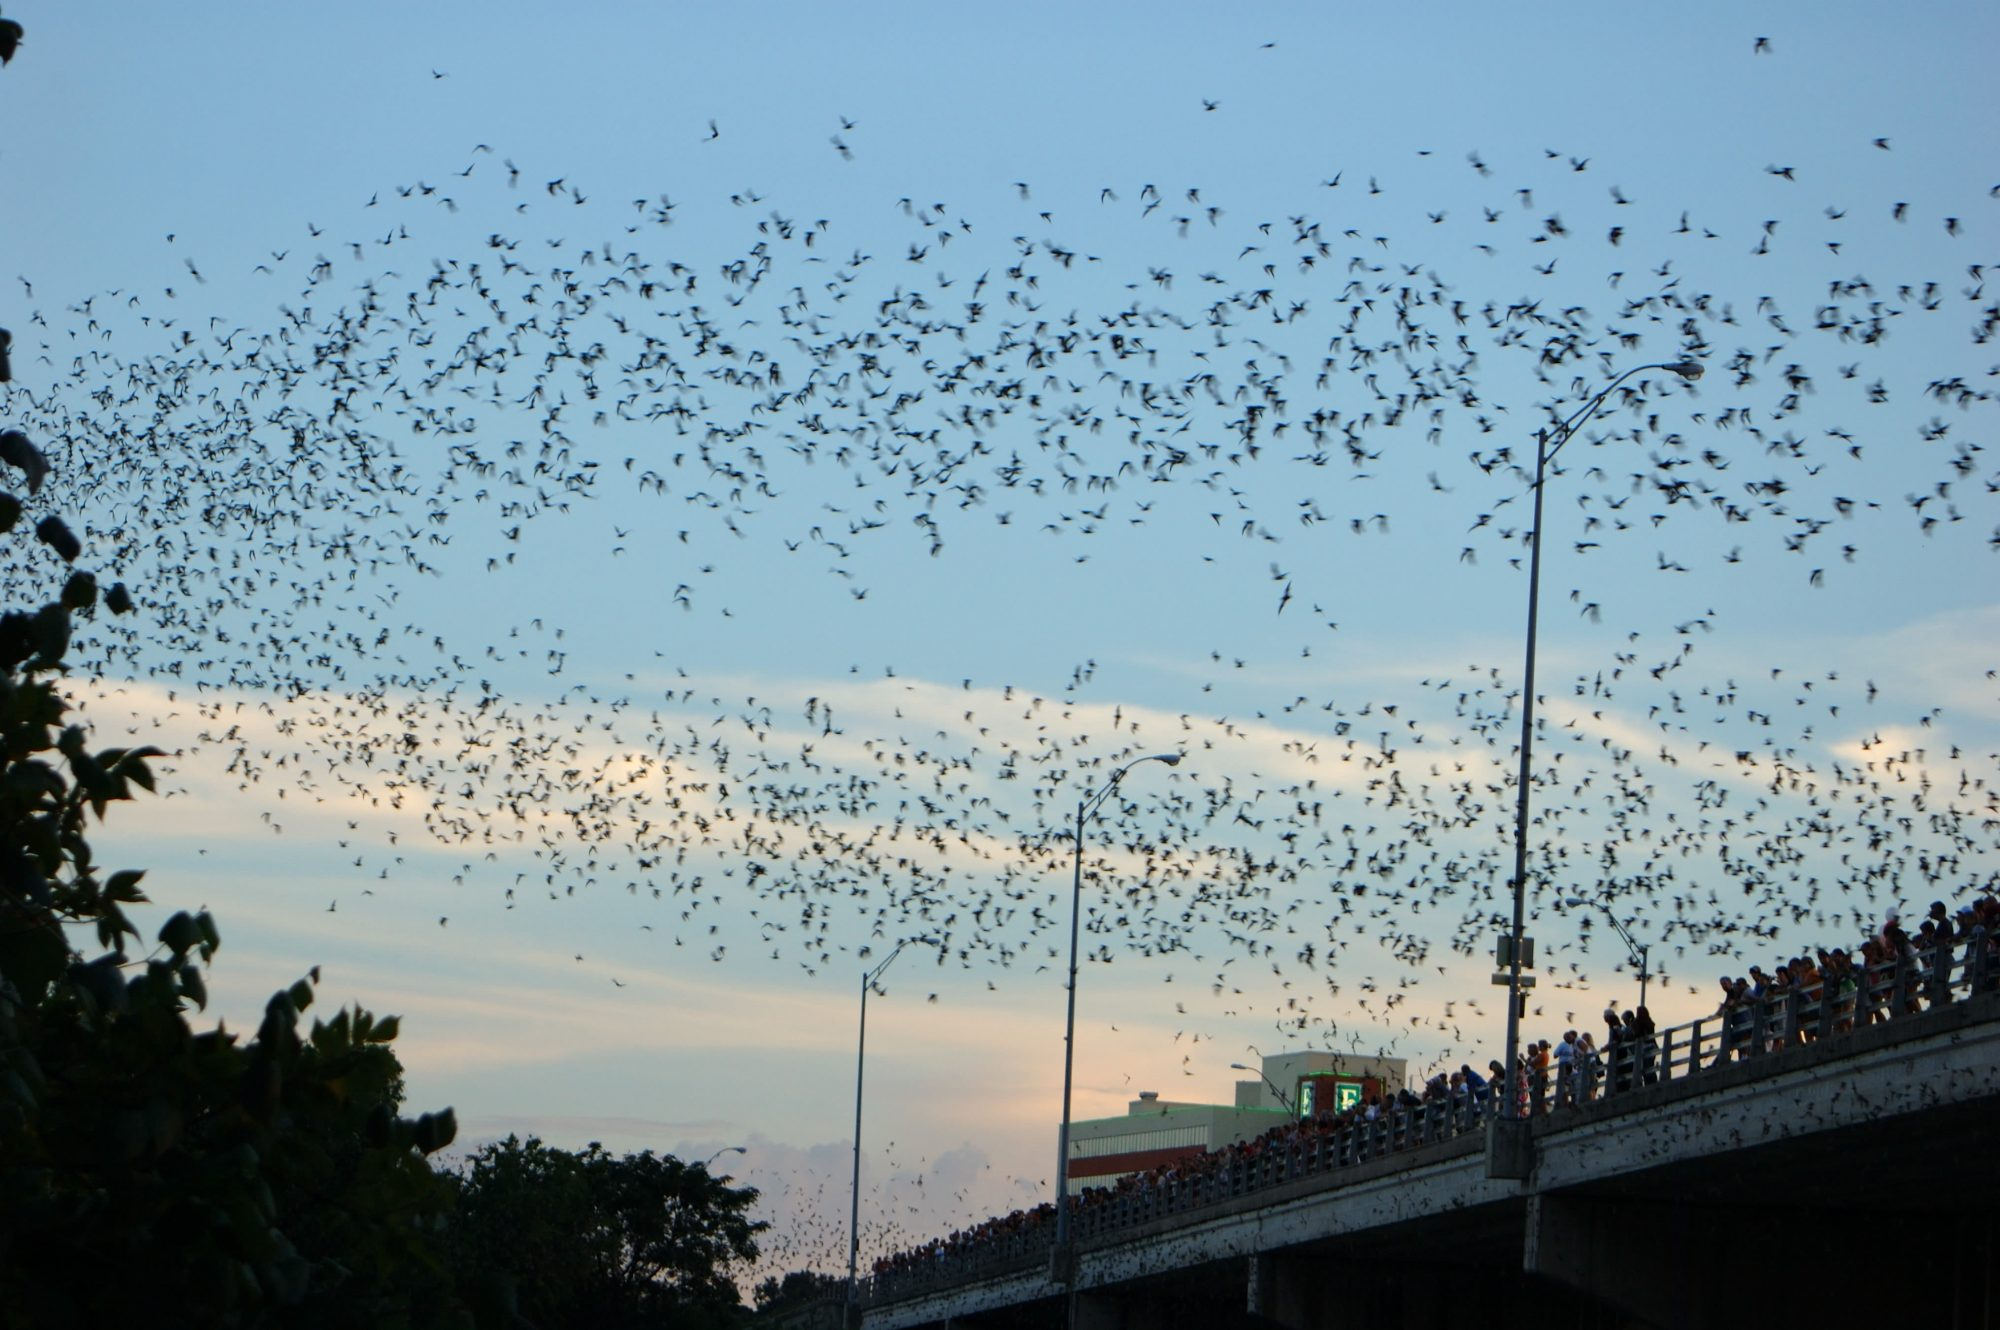 Austin Congress Ave Bats